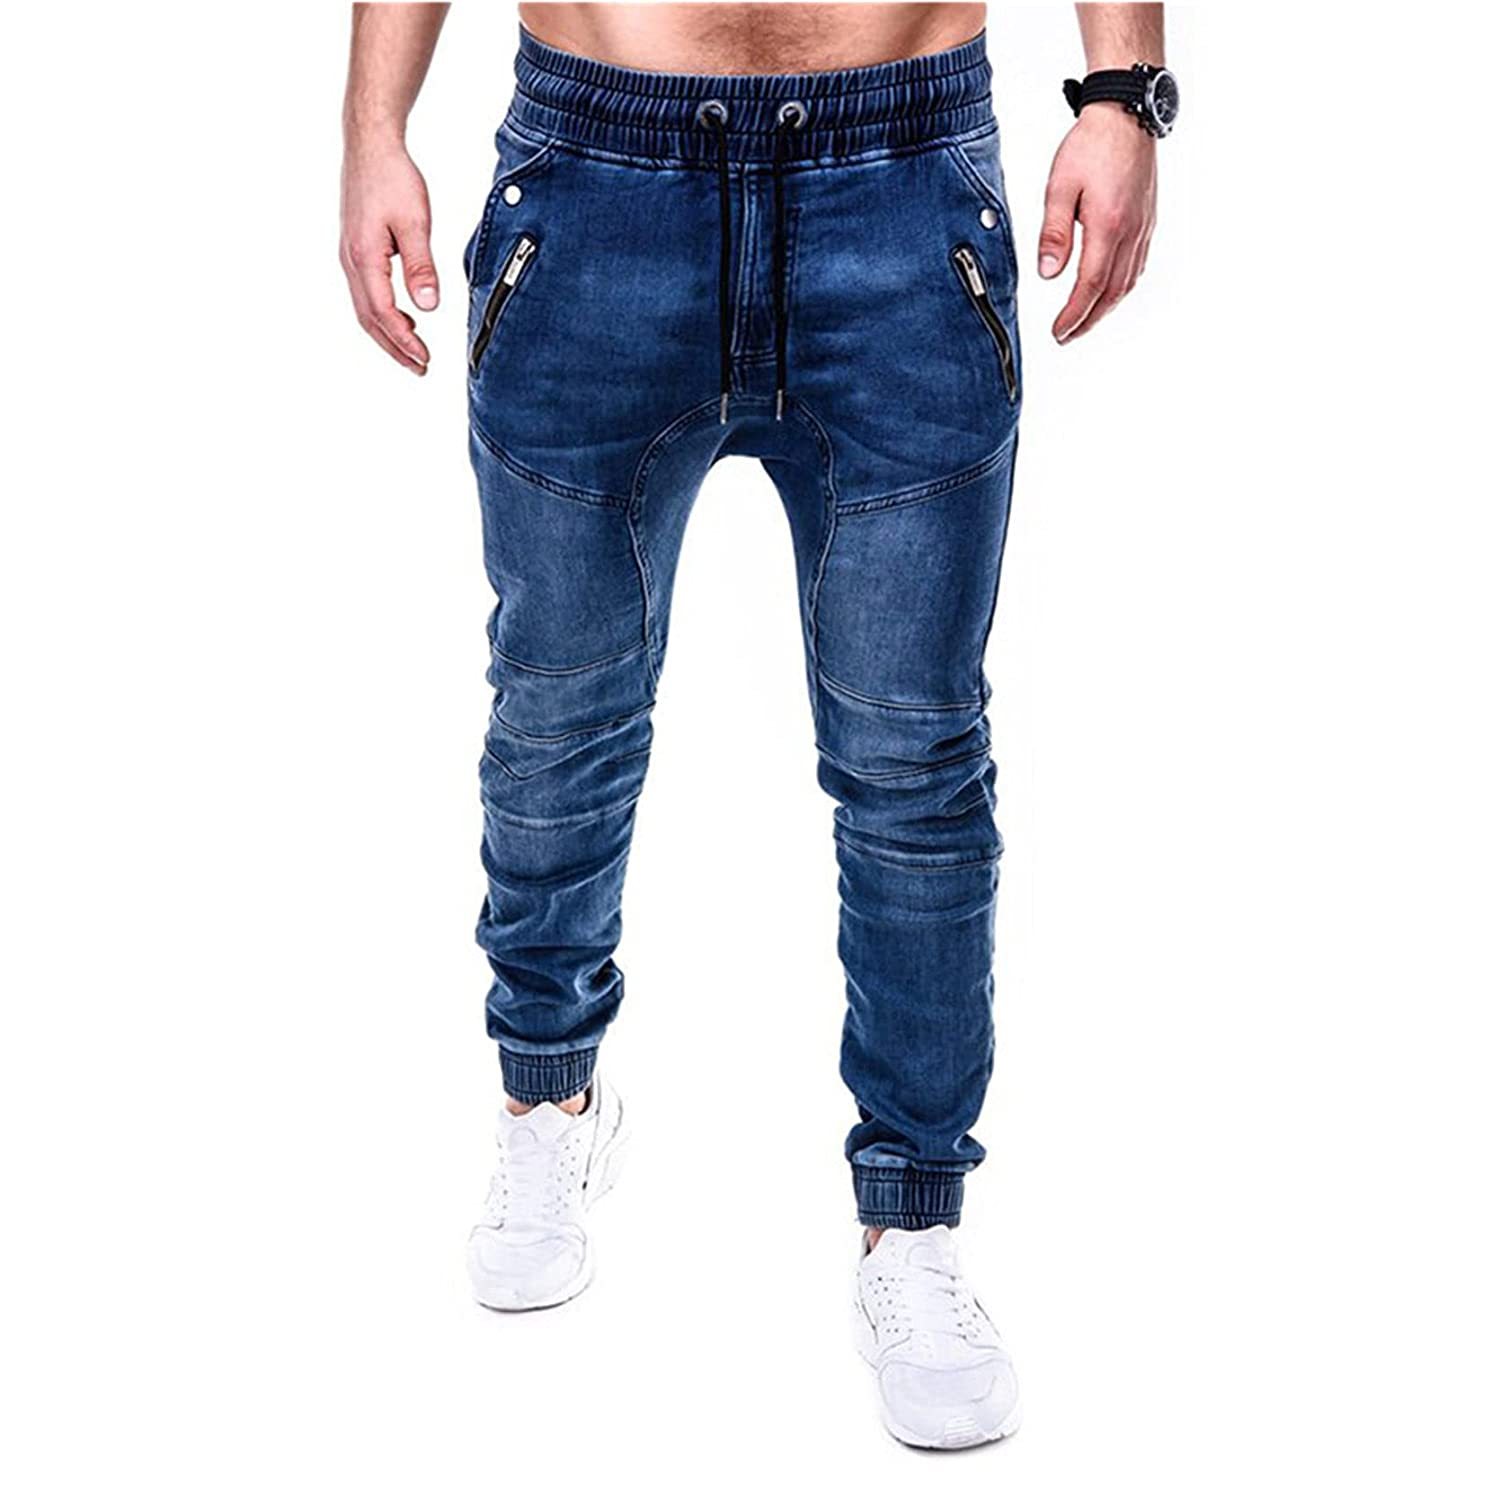 Men's Max 70% OFF Fashion Slim Fit Jogger Elastic Waistband Den Jeans At the price Casual